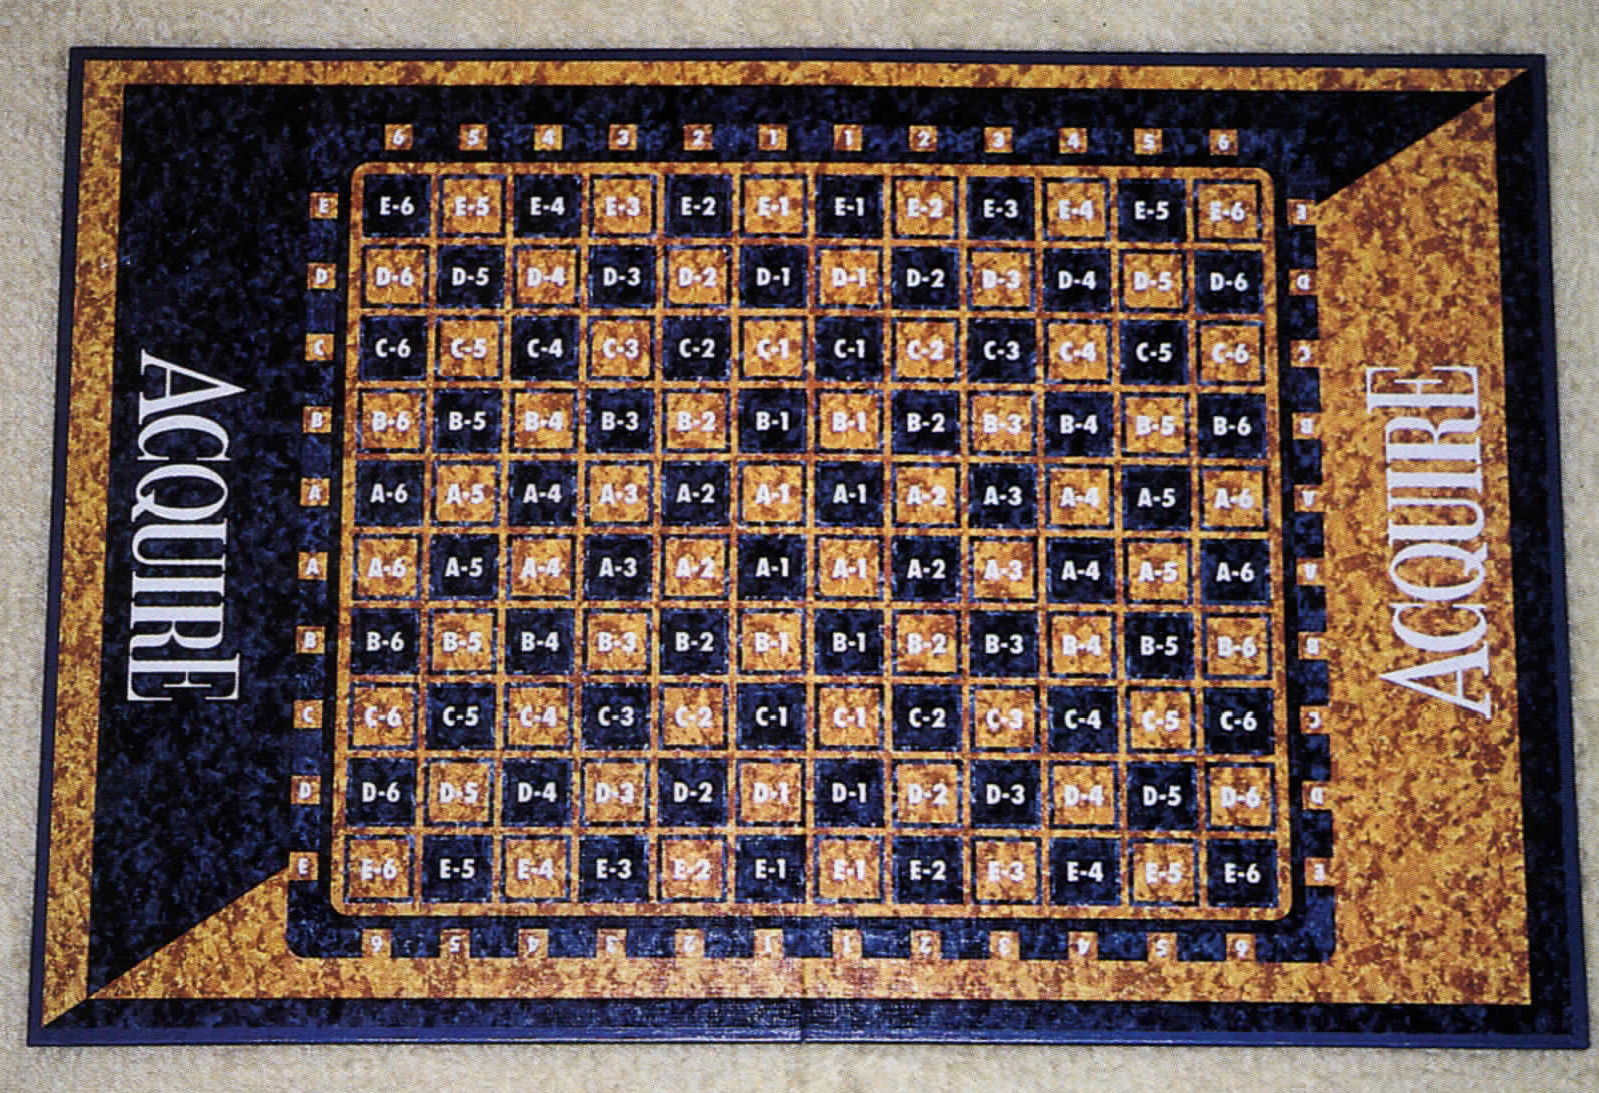 1997 ACQUIRE Game Board